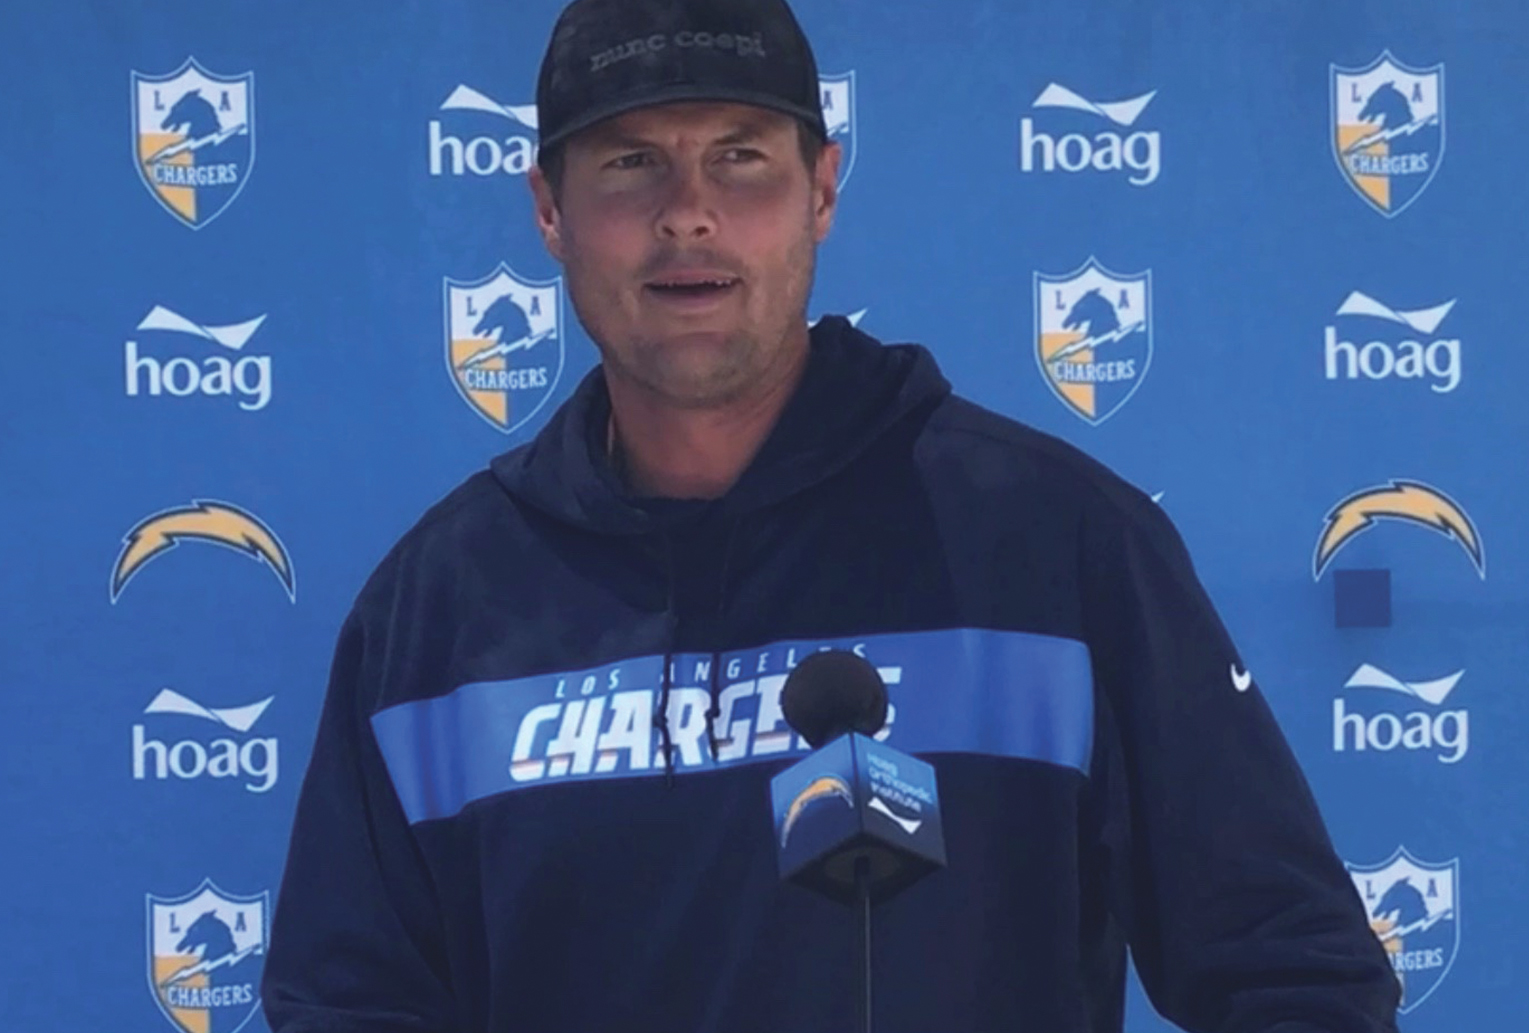 Los Angeles Chargers Quarterback Phillip Rivers. (Photo Credit: Cameron Buford/Voice of the Fans)